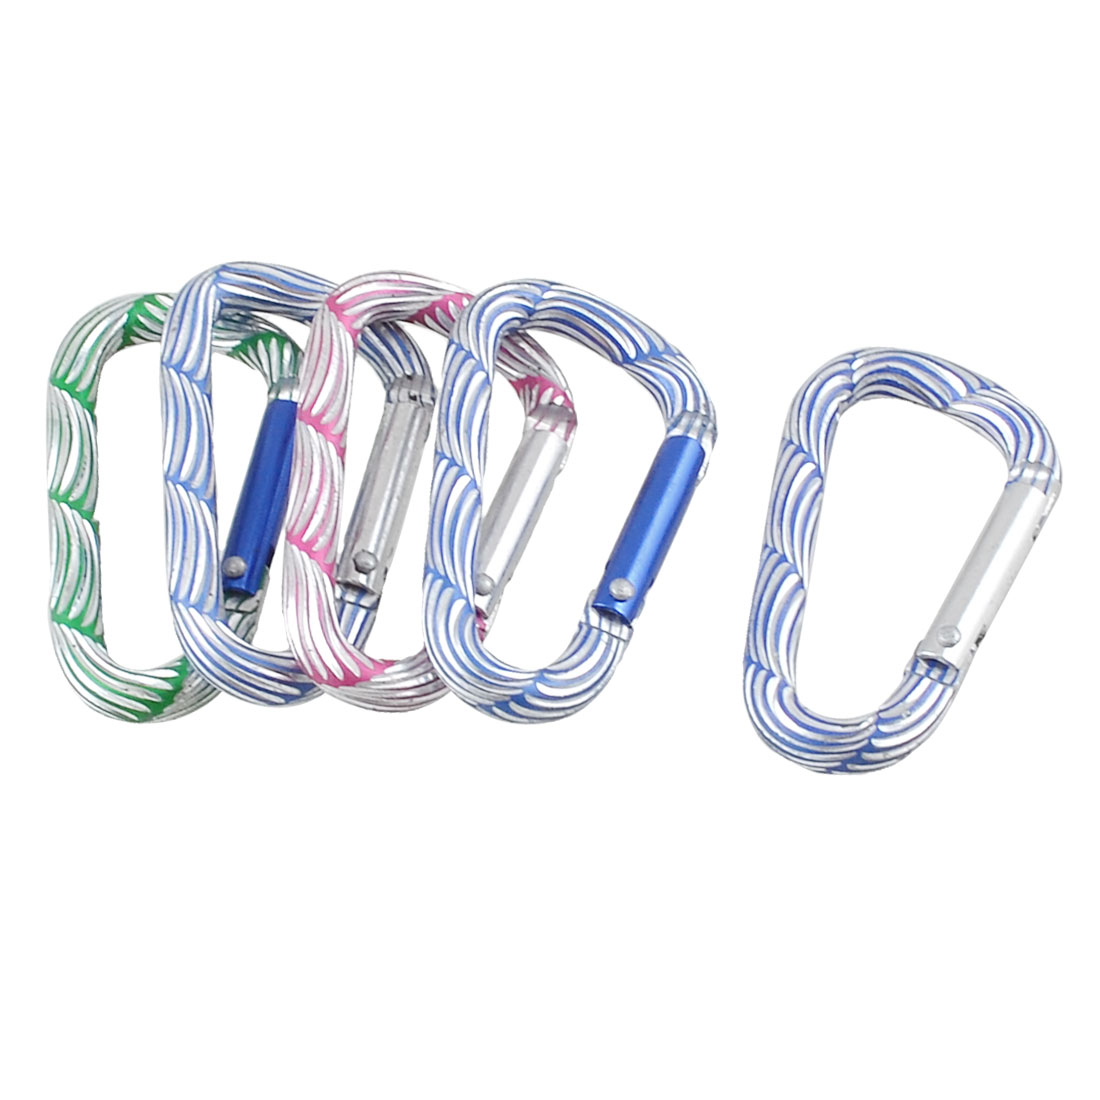 Multicolor Stripded D Shaped Locking Carabiner Key Holder 5 Pcs